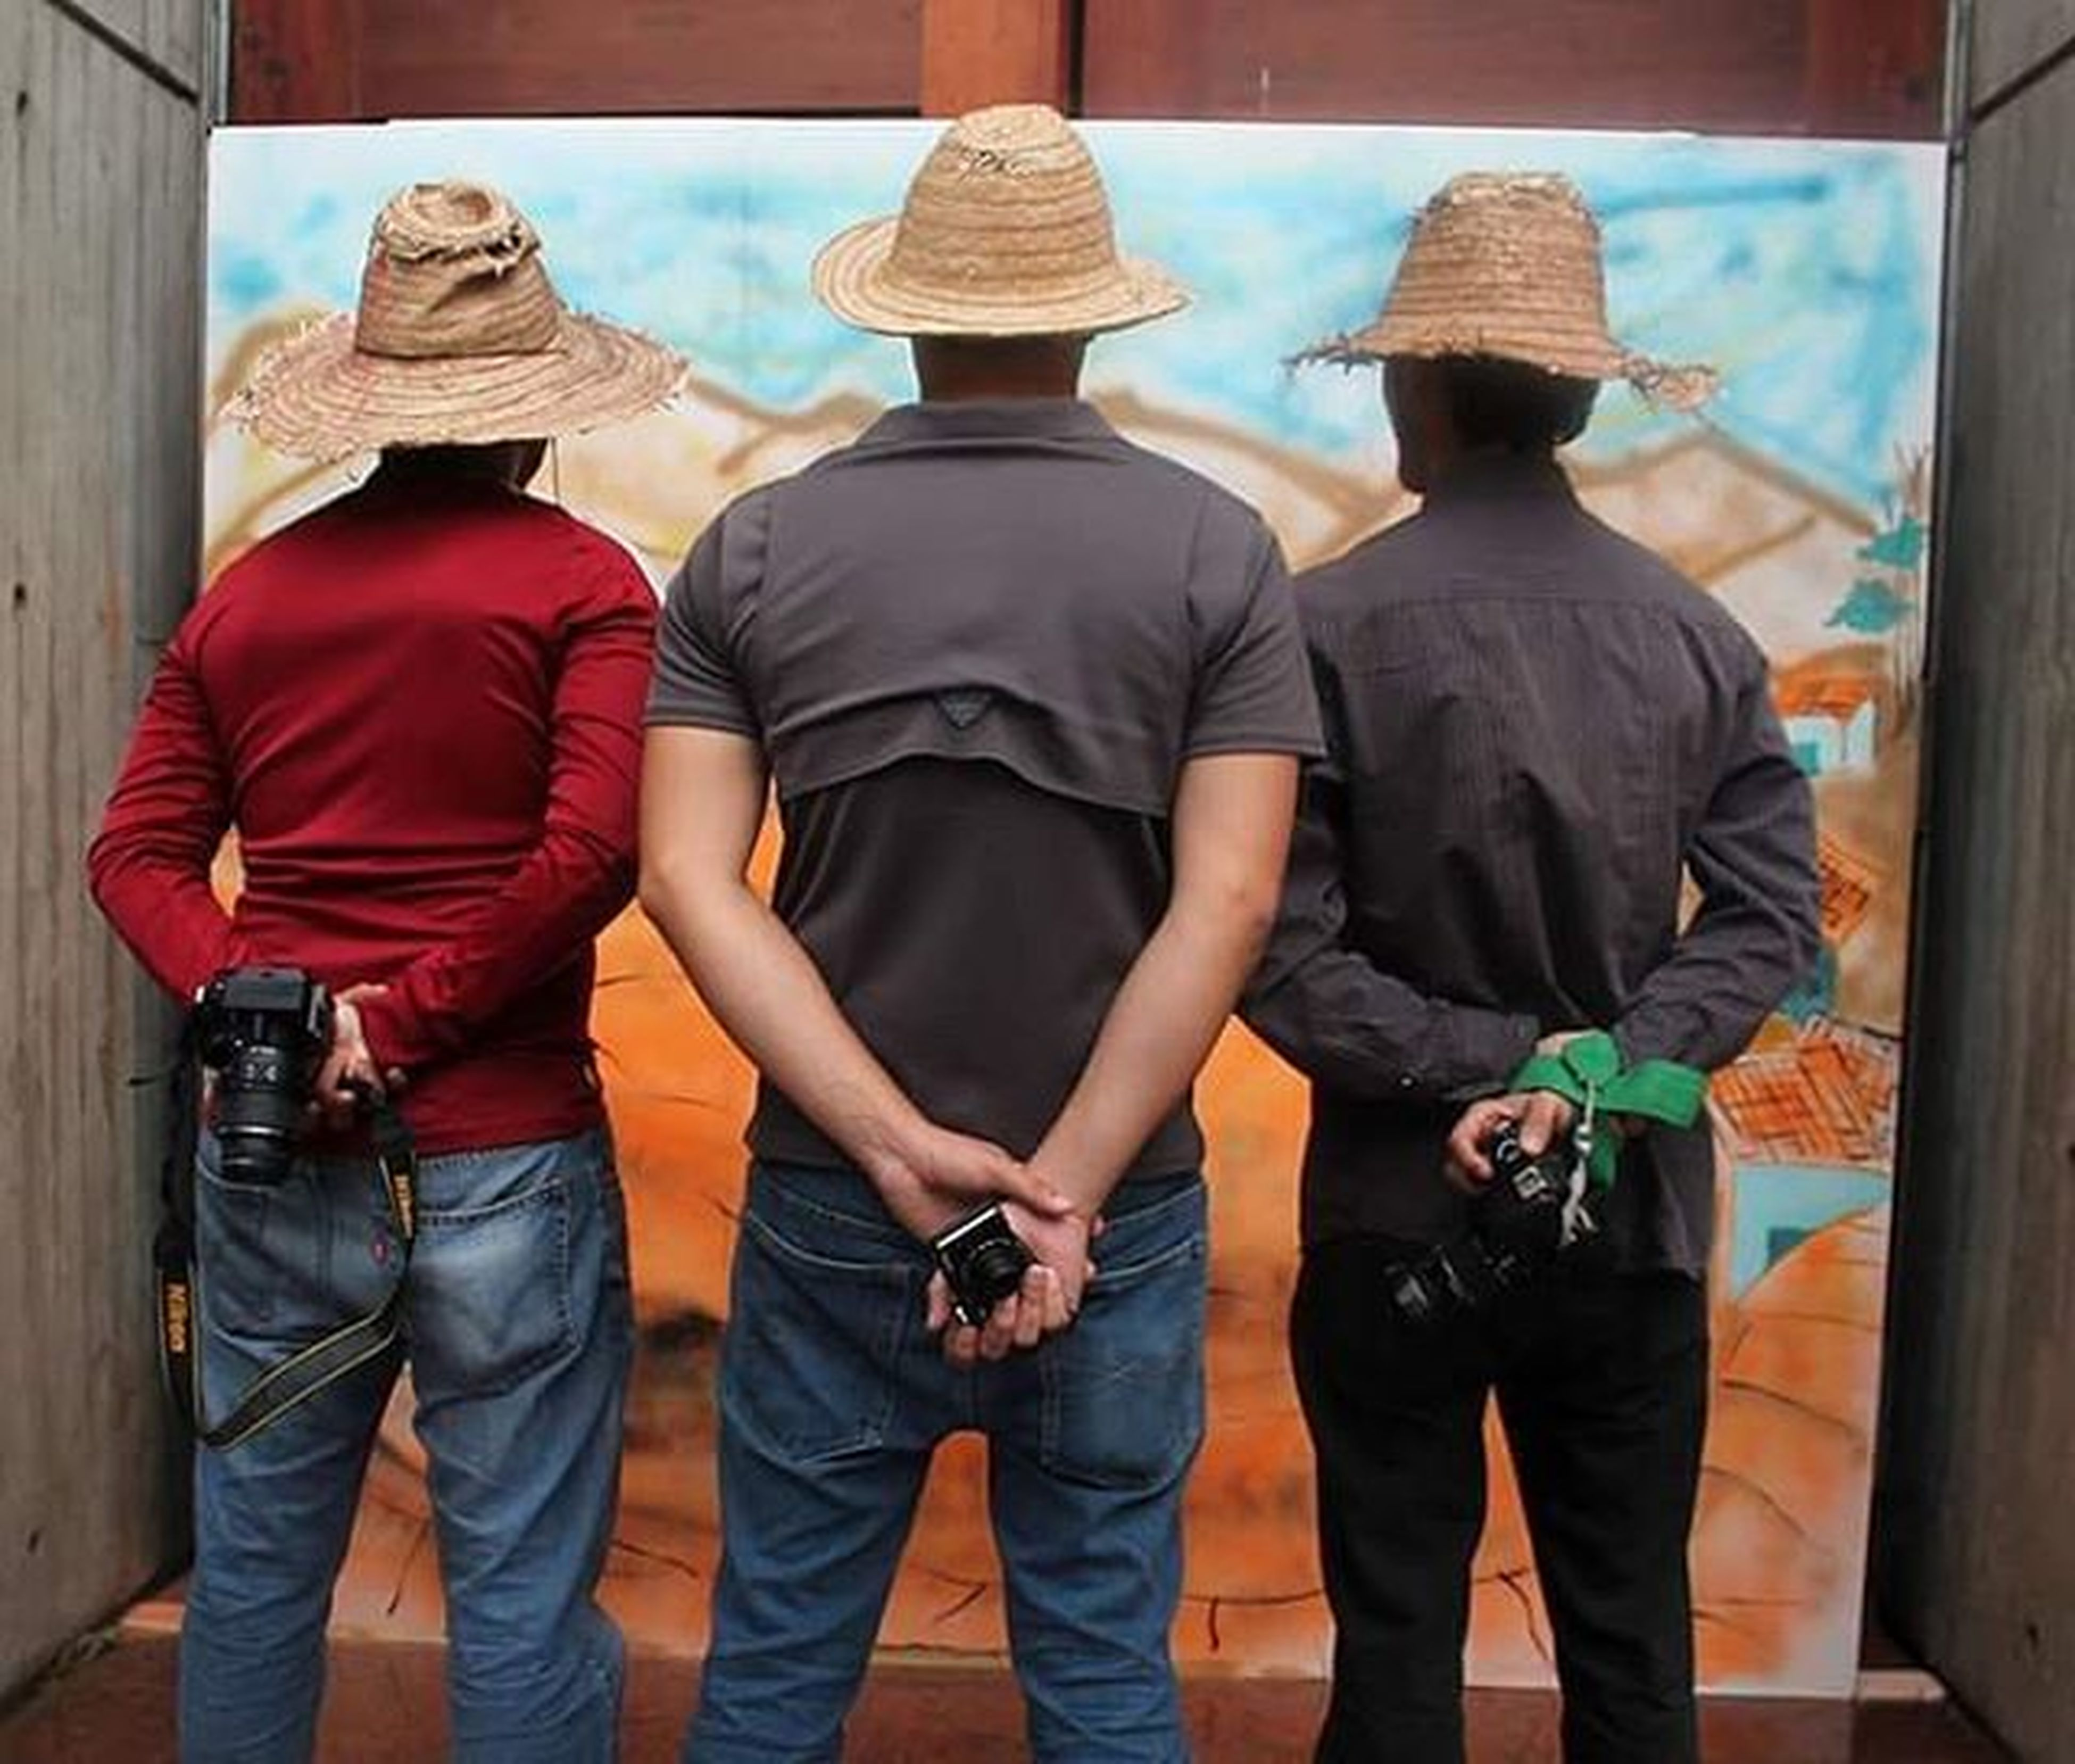 men, lifestyles, casual clothing, rear view, standing, togetherness, leisure activity, person, warm clothing, indoors, medium group of people, sitting, full length, travel, day, blue, bonding